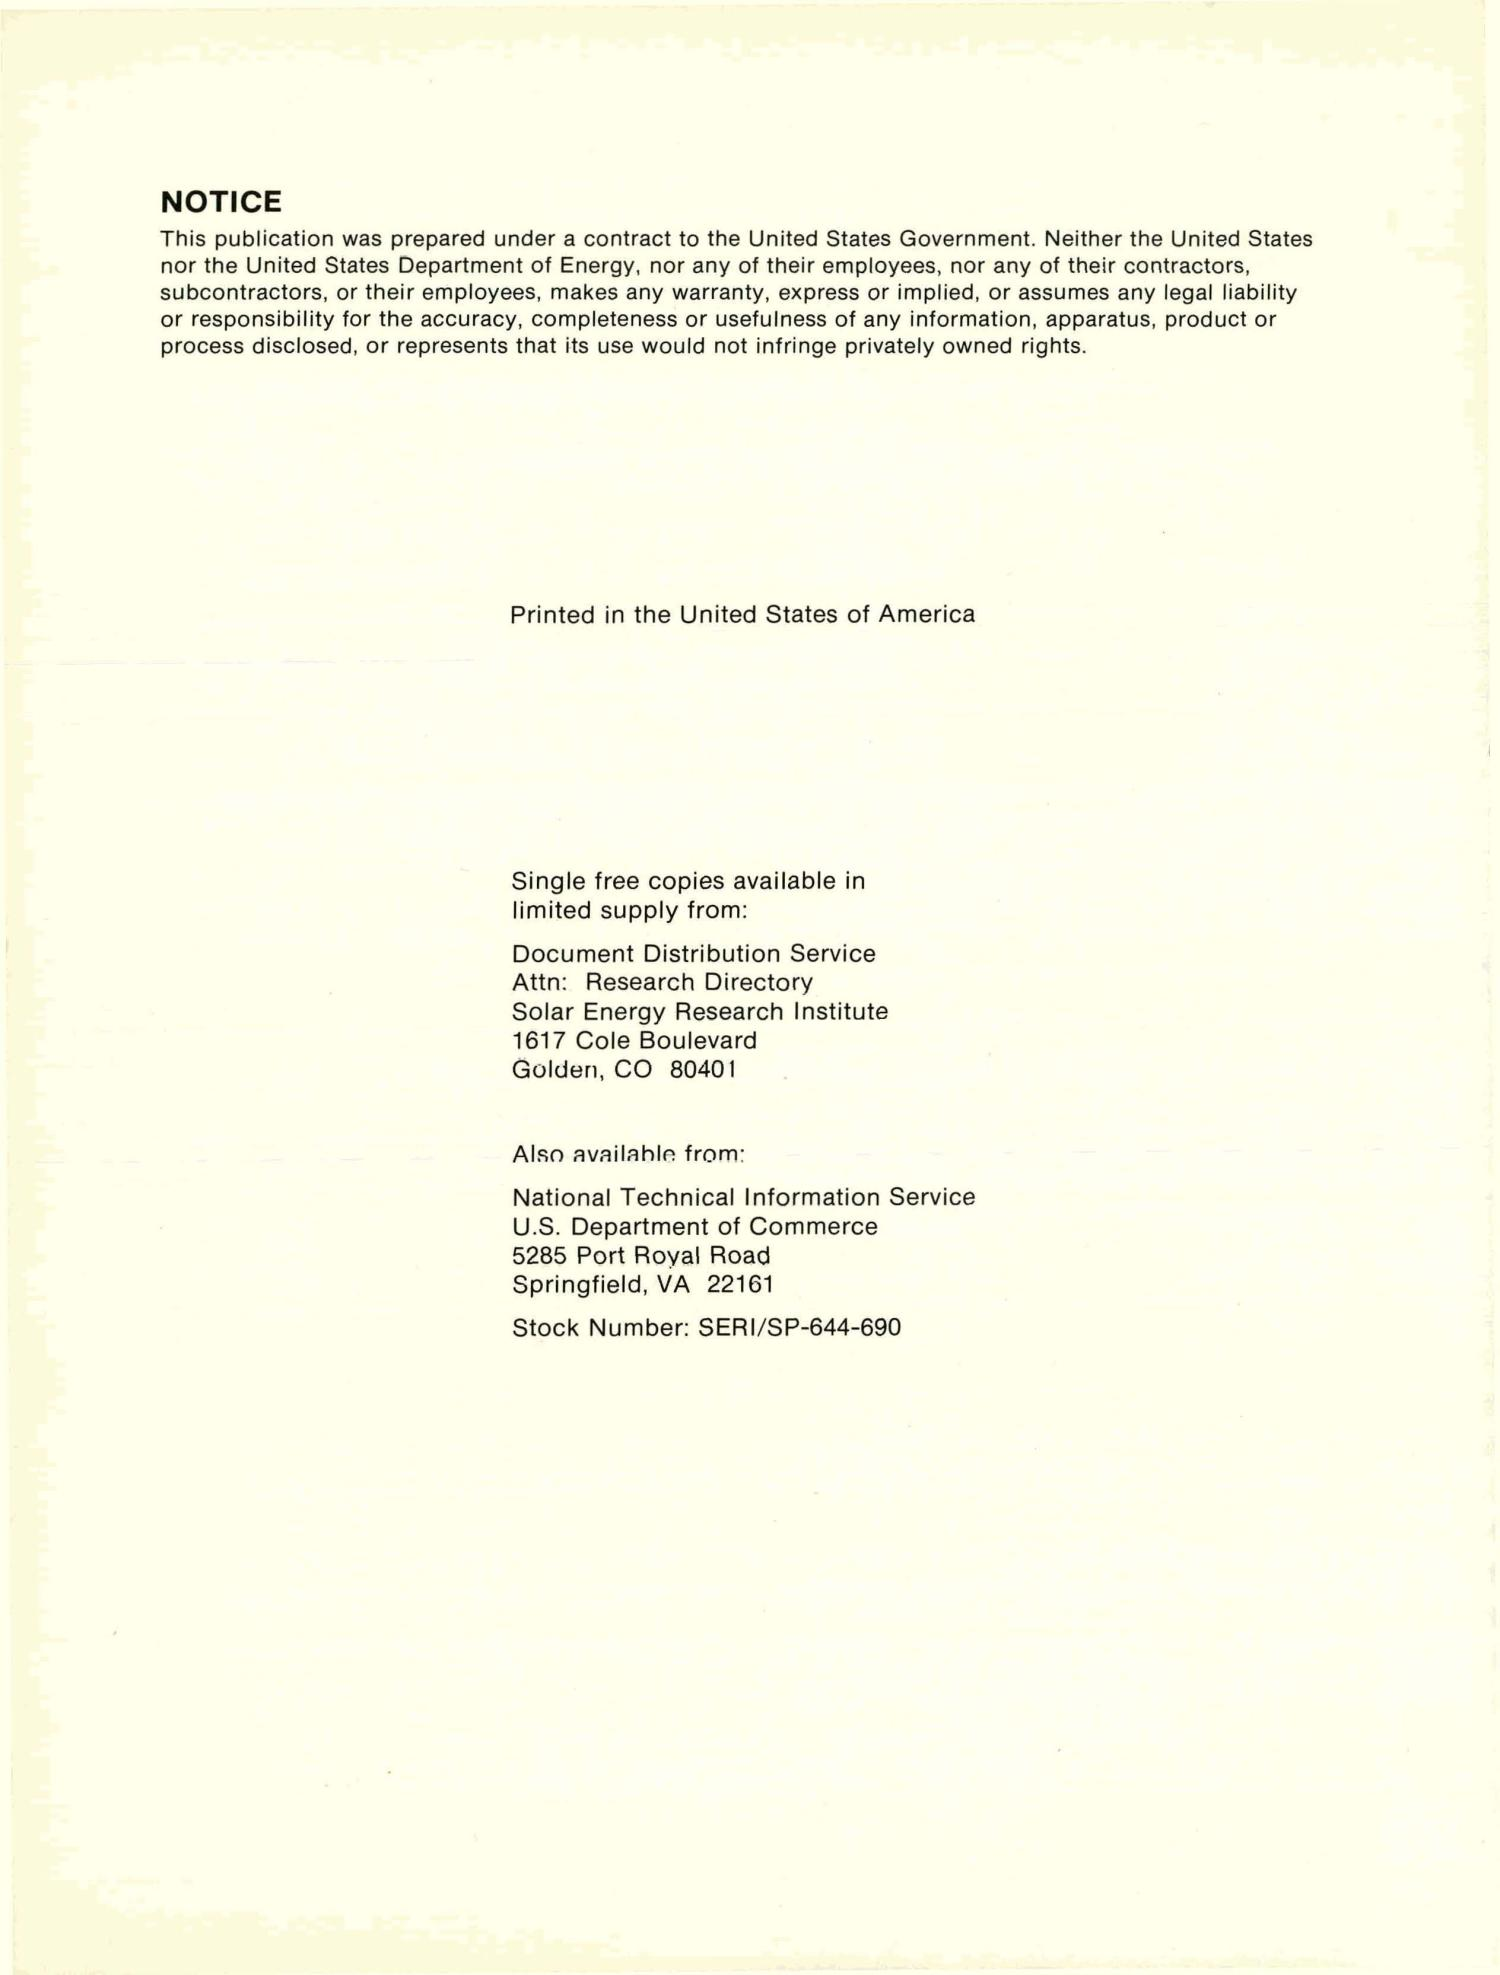 Directory of Solar Energy Research Activities in the United States: First Edition, May 1980. [1220 projects]                                                                                                      [Sequence #]: 4 of 460